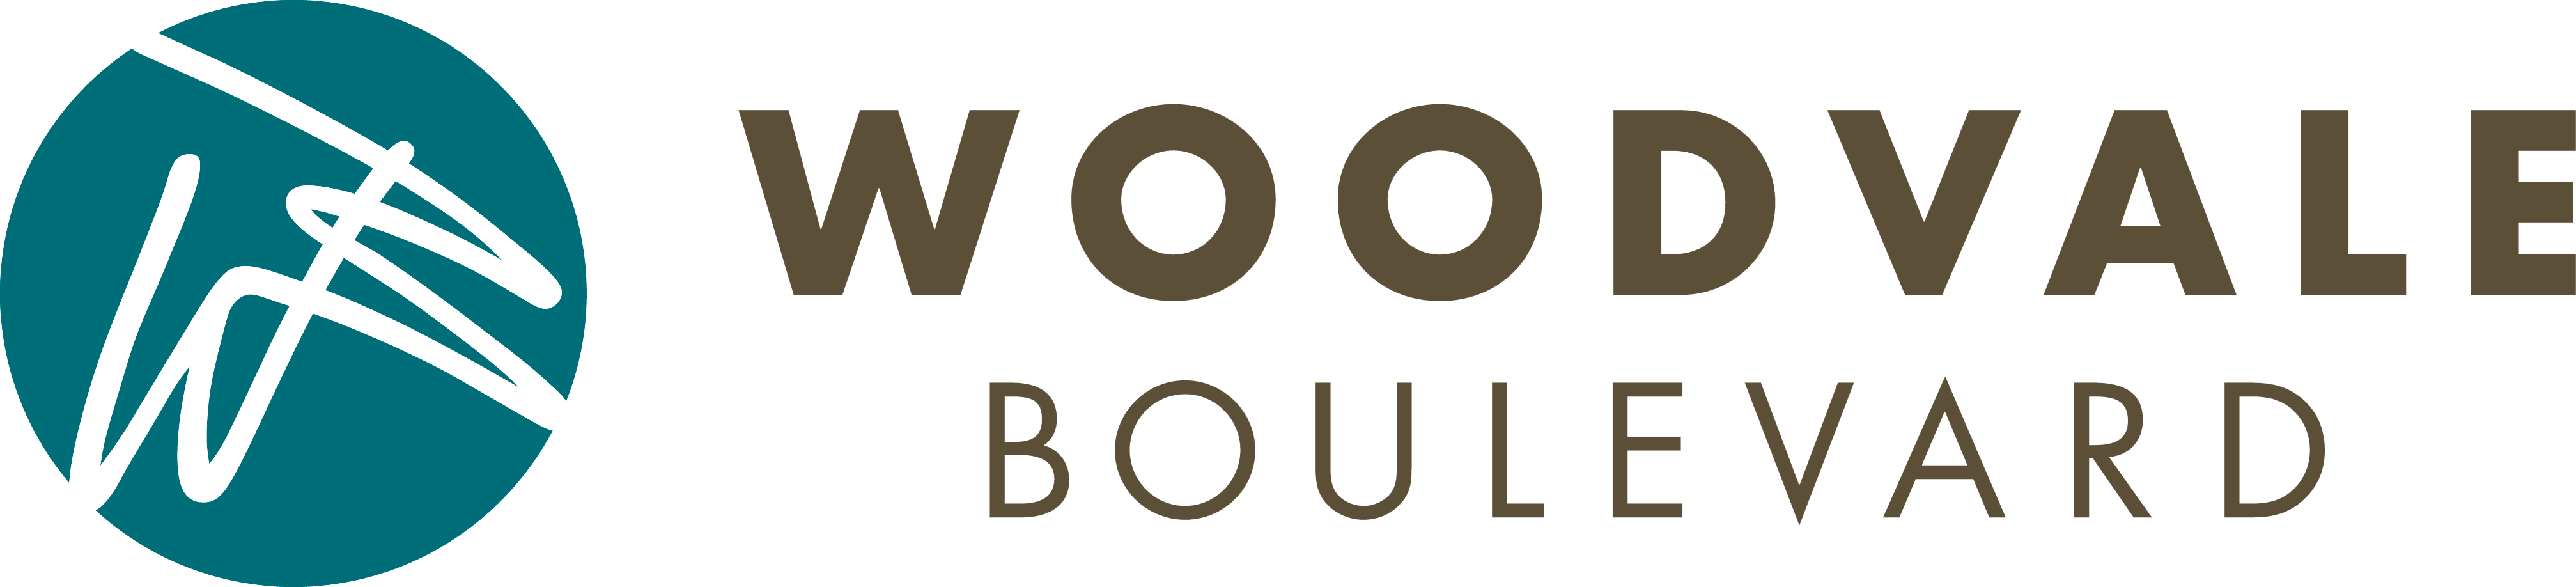 Woodvale Boulevard Shopping Centre logo